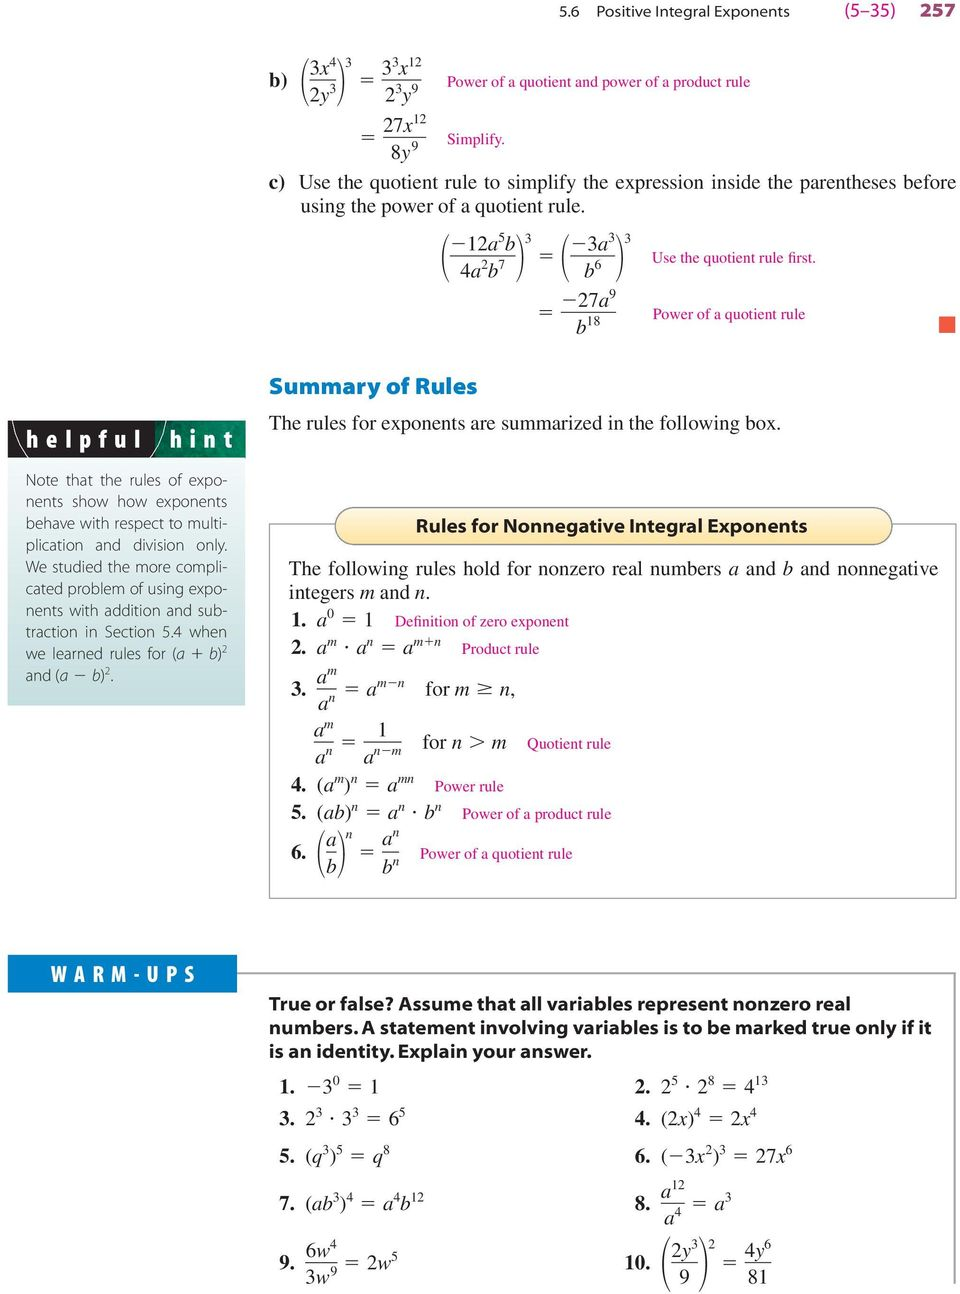 7 8 Power of quotient rule helpful hint Sury of Rules The rules for eponents re surized in the following o.